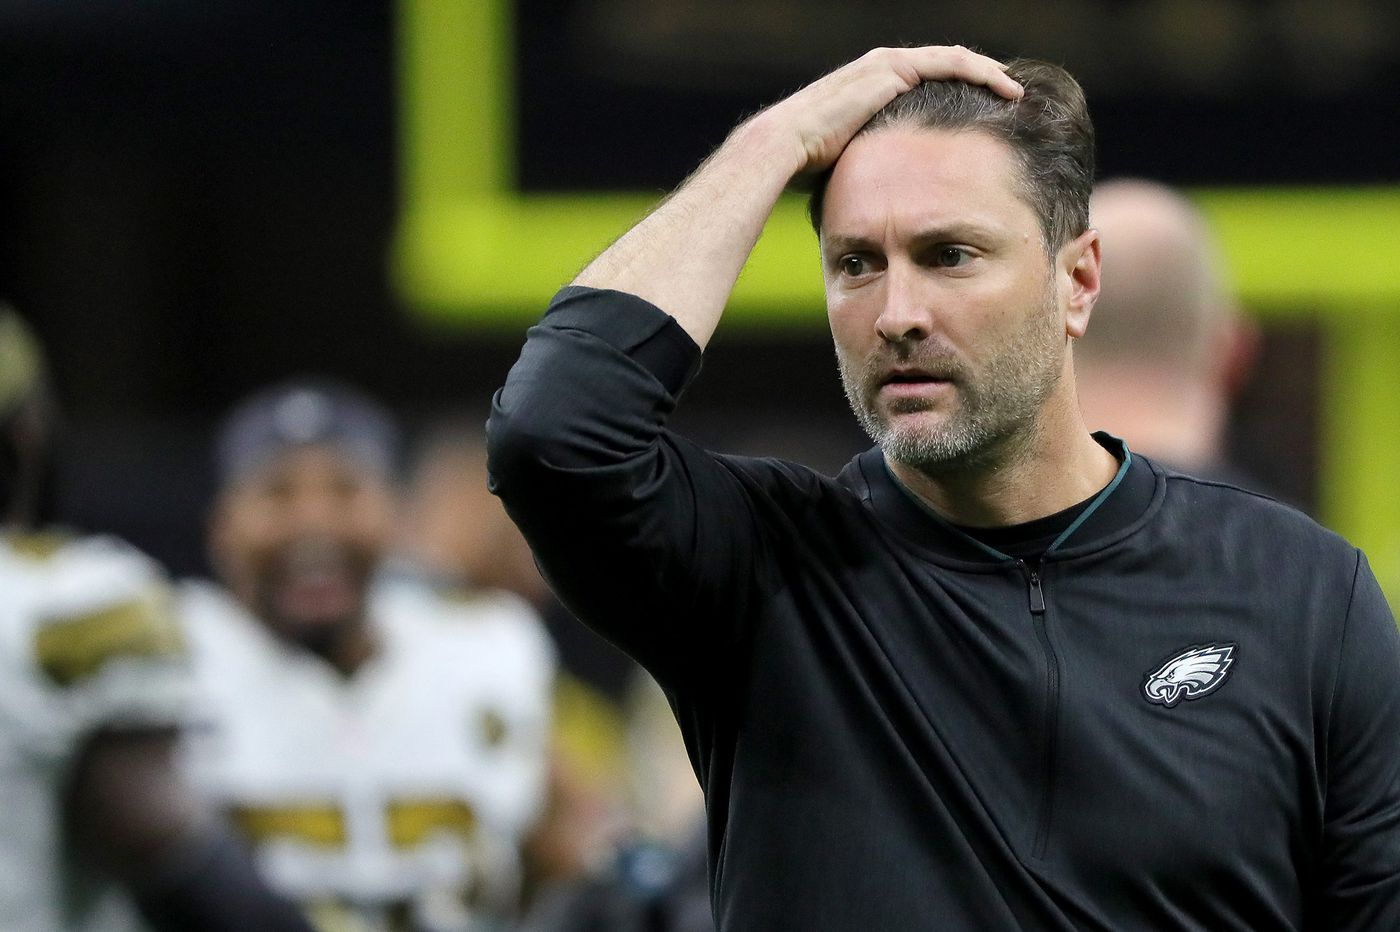 Eagles offensive coordinator Mike Groh is struggling with integrating Golden Tate, among other things